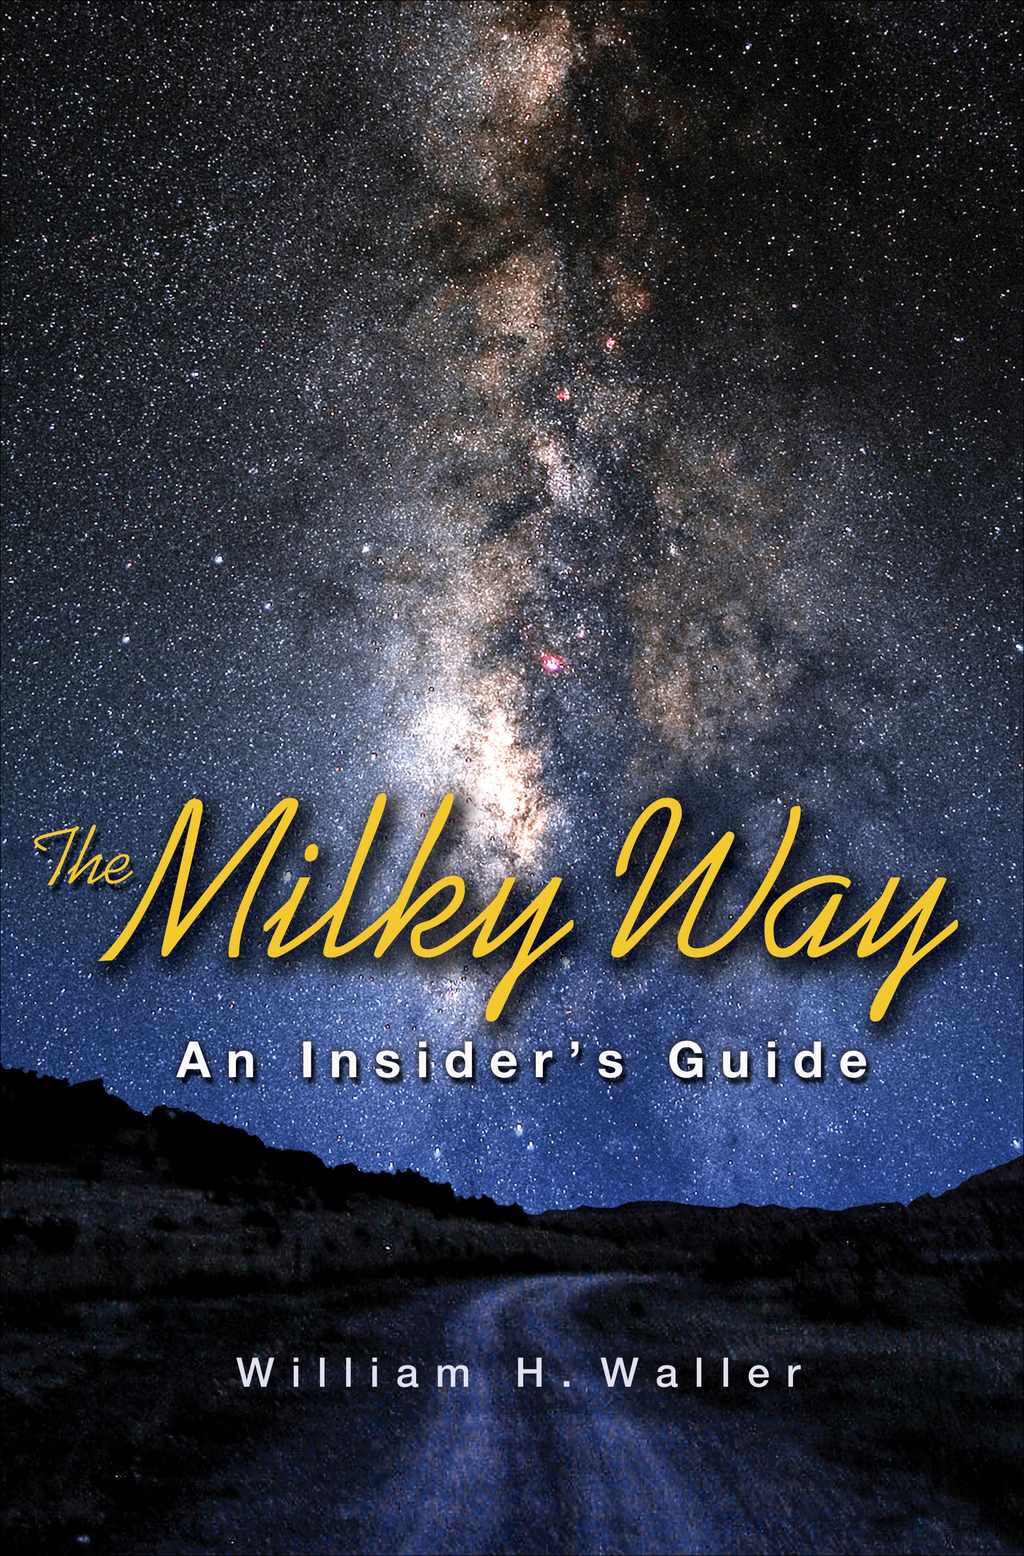 The Milky Way An Insider's Guide